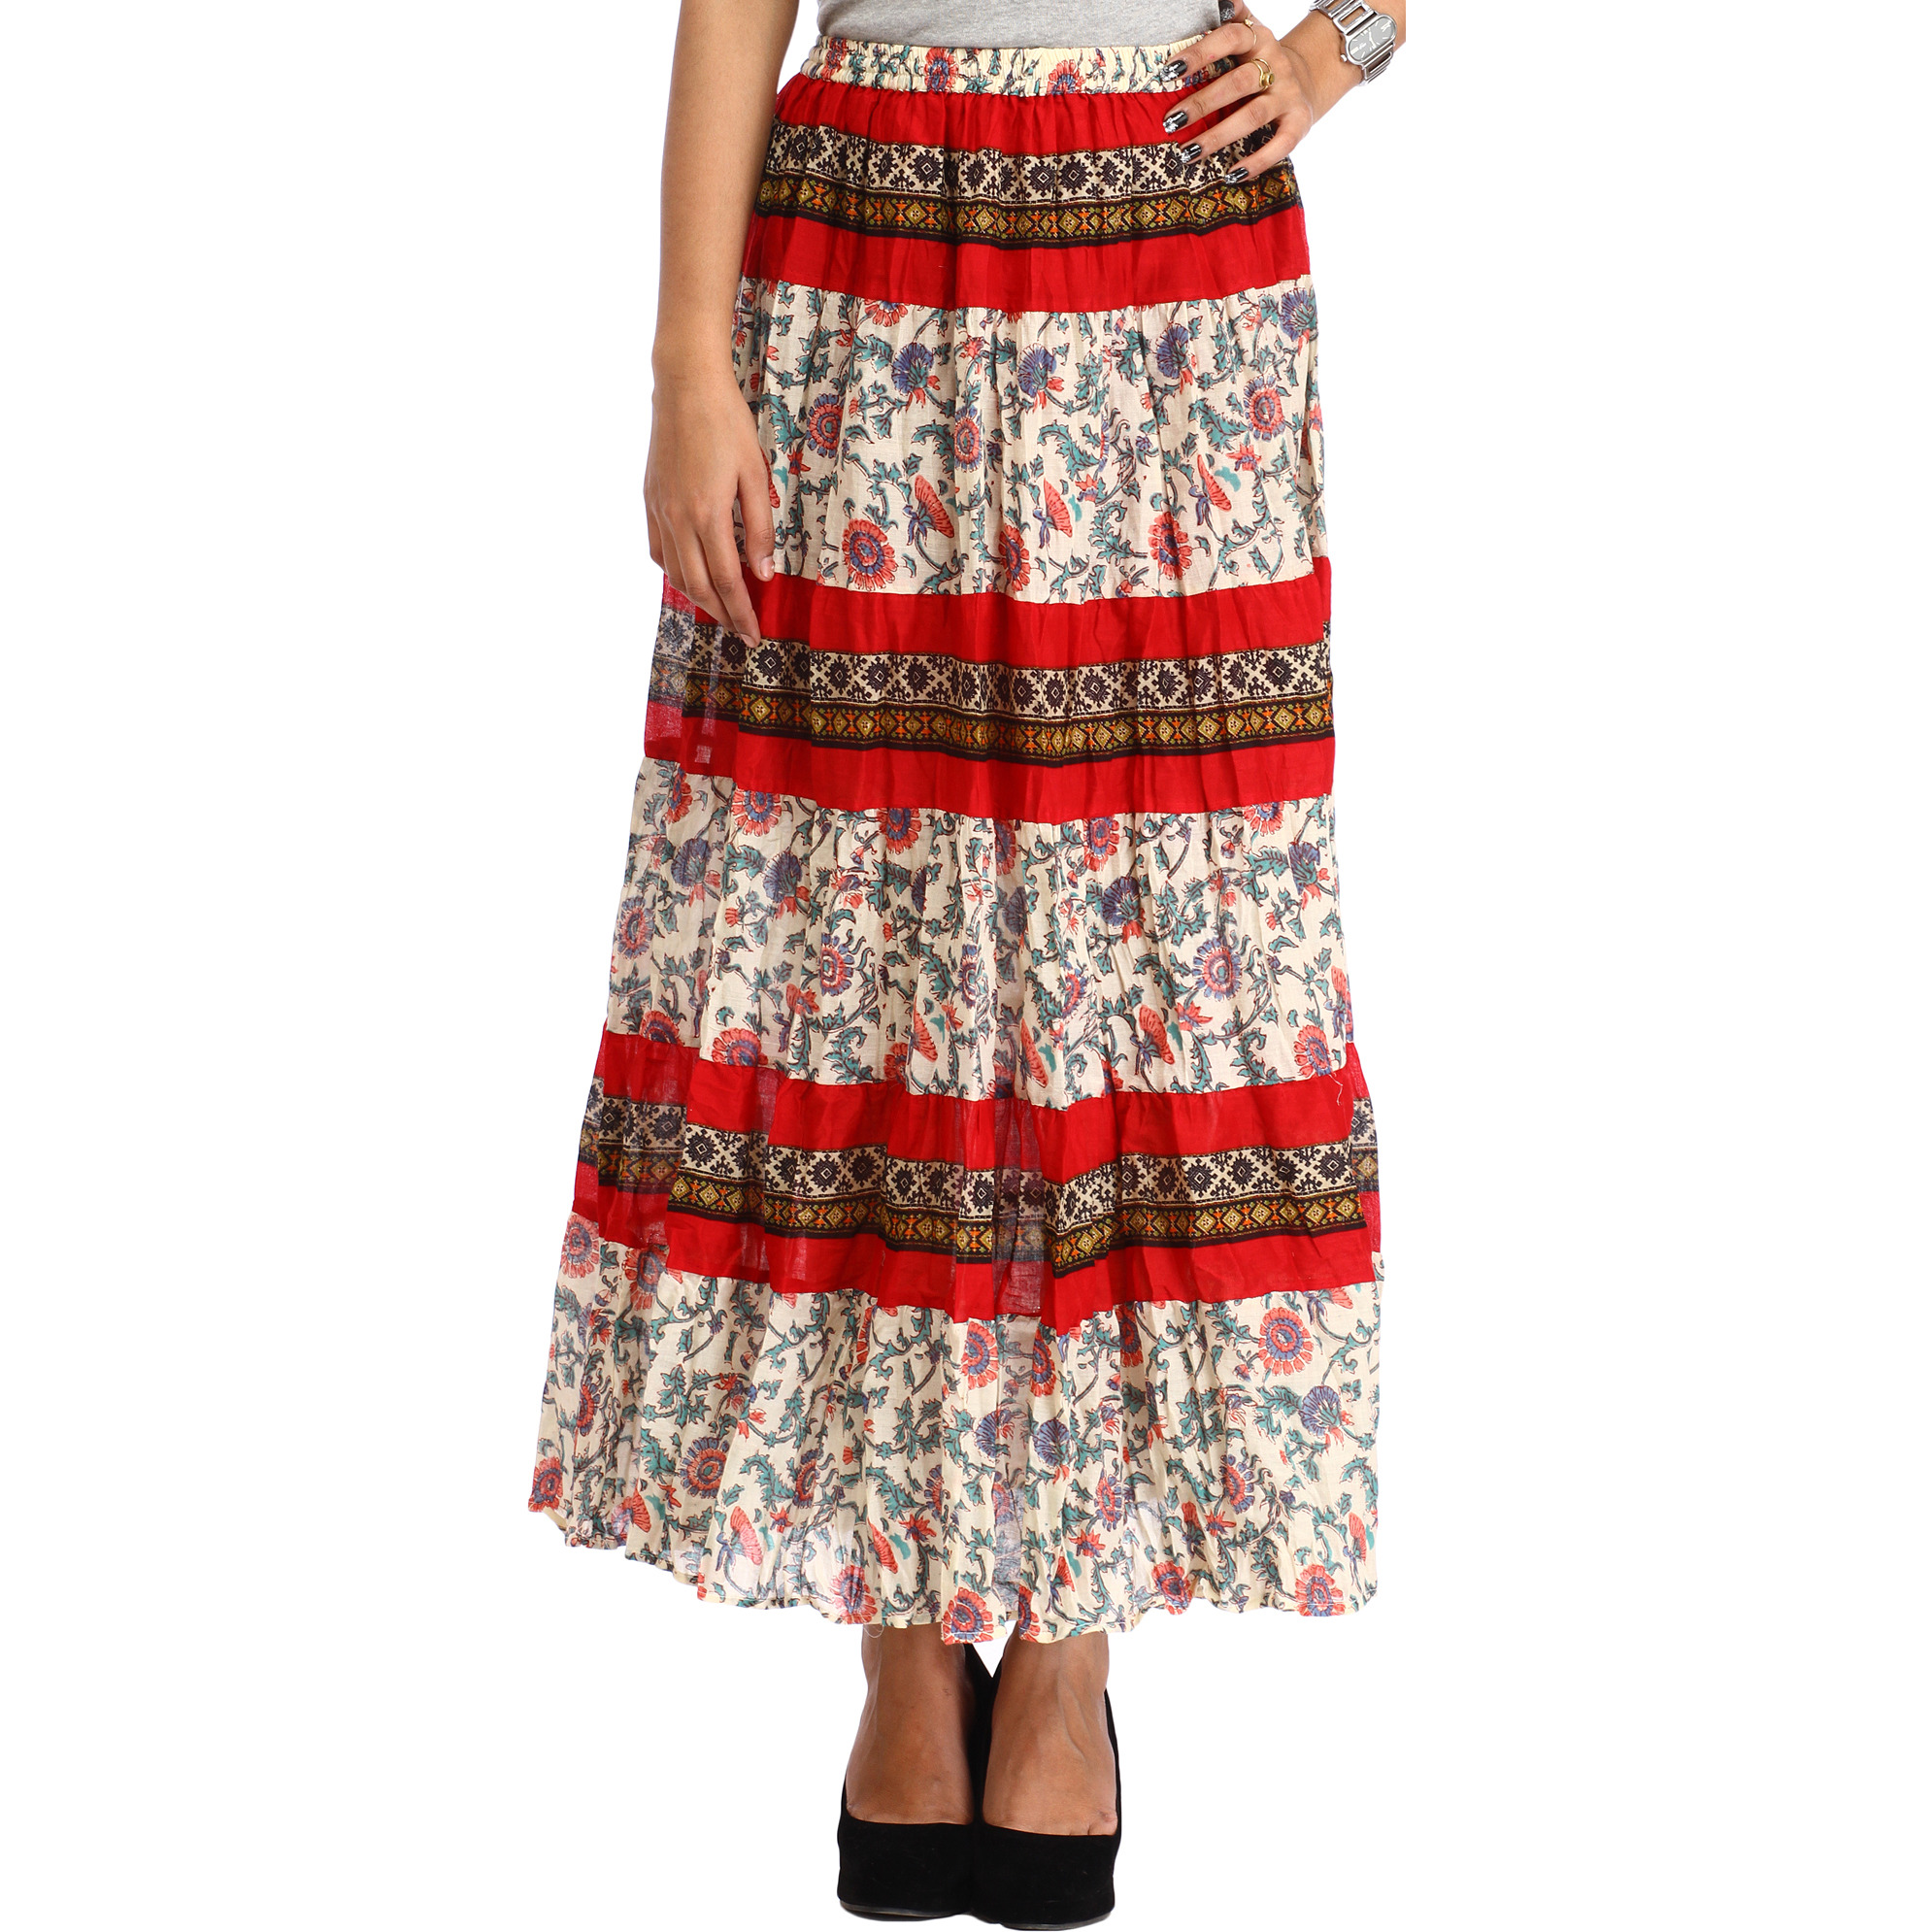 Cream and Red Long Skirt with Printed Flowers